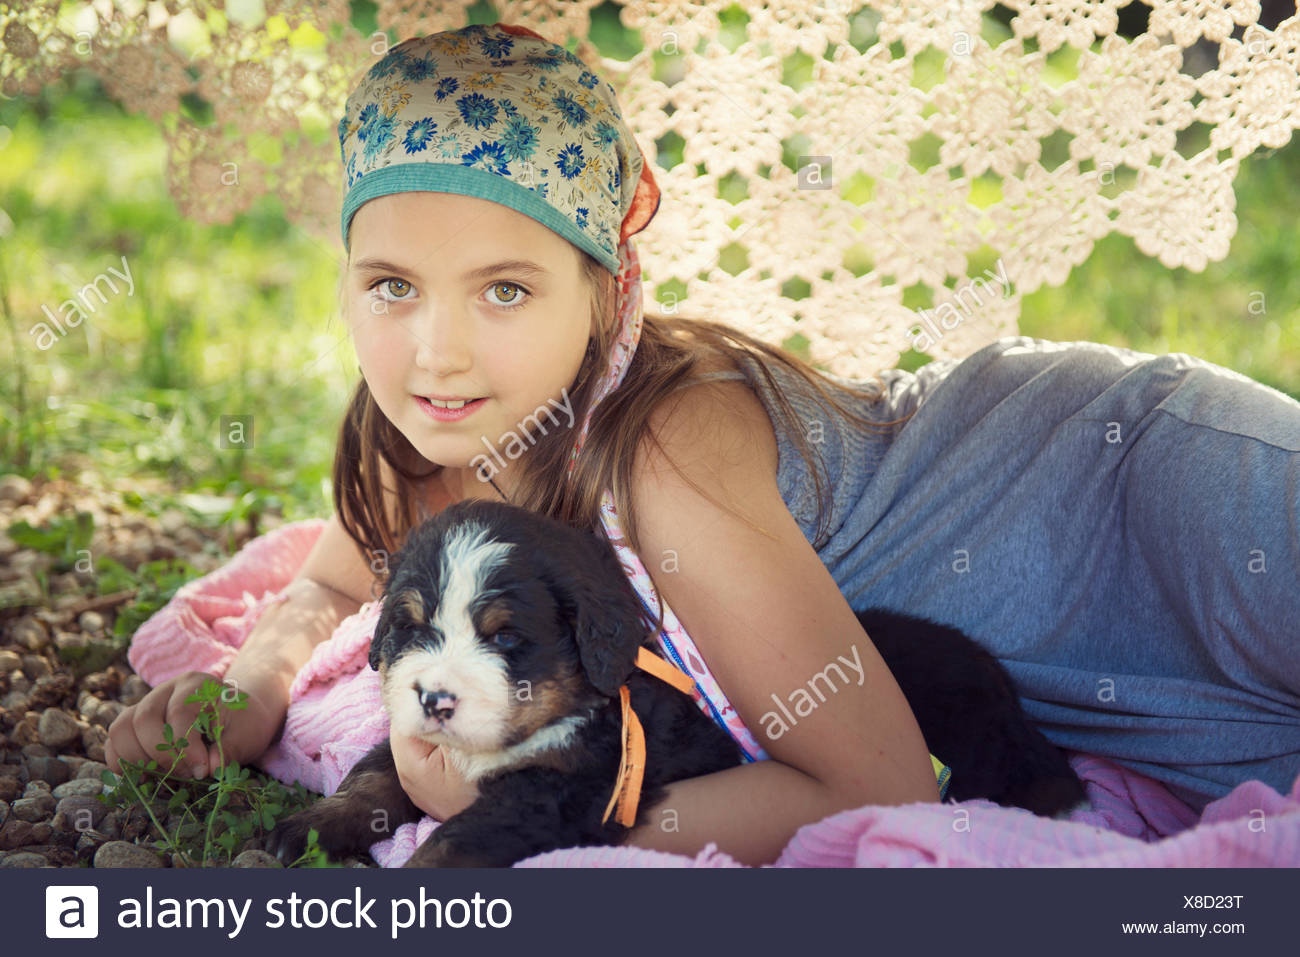 Girl allongé sous une table avec un chiot Photo Stock